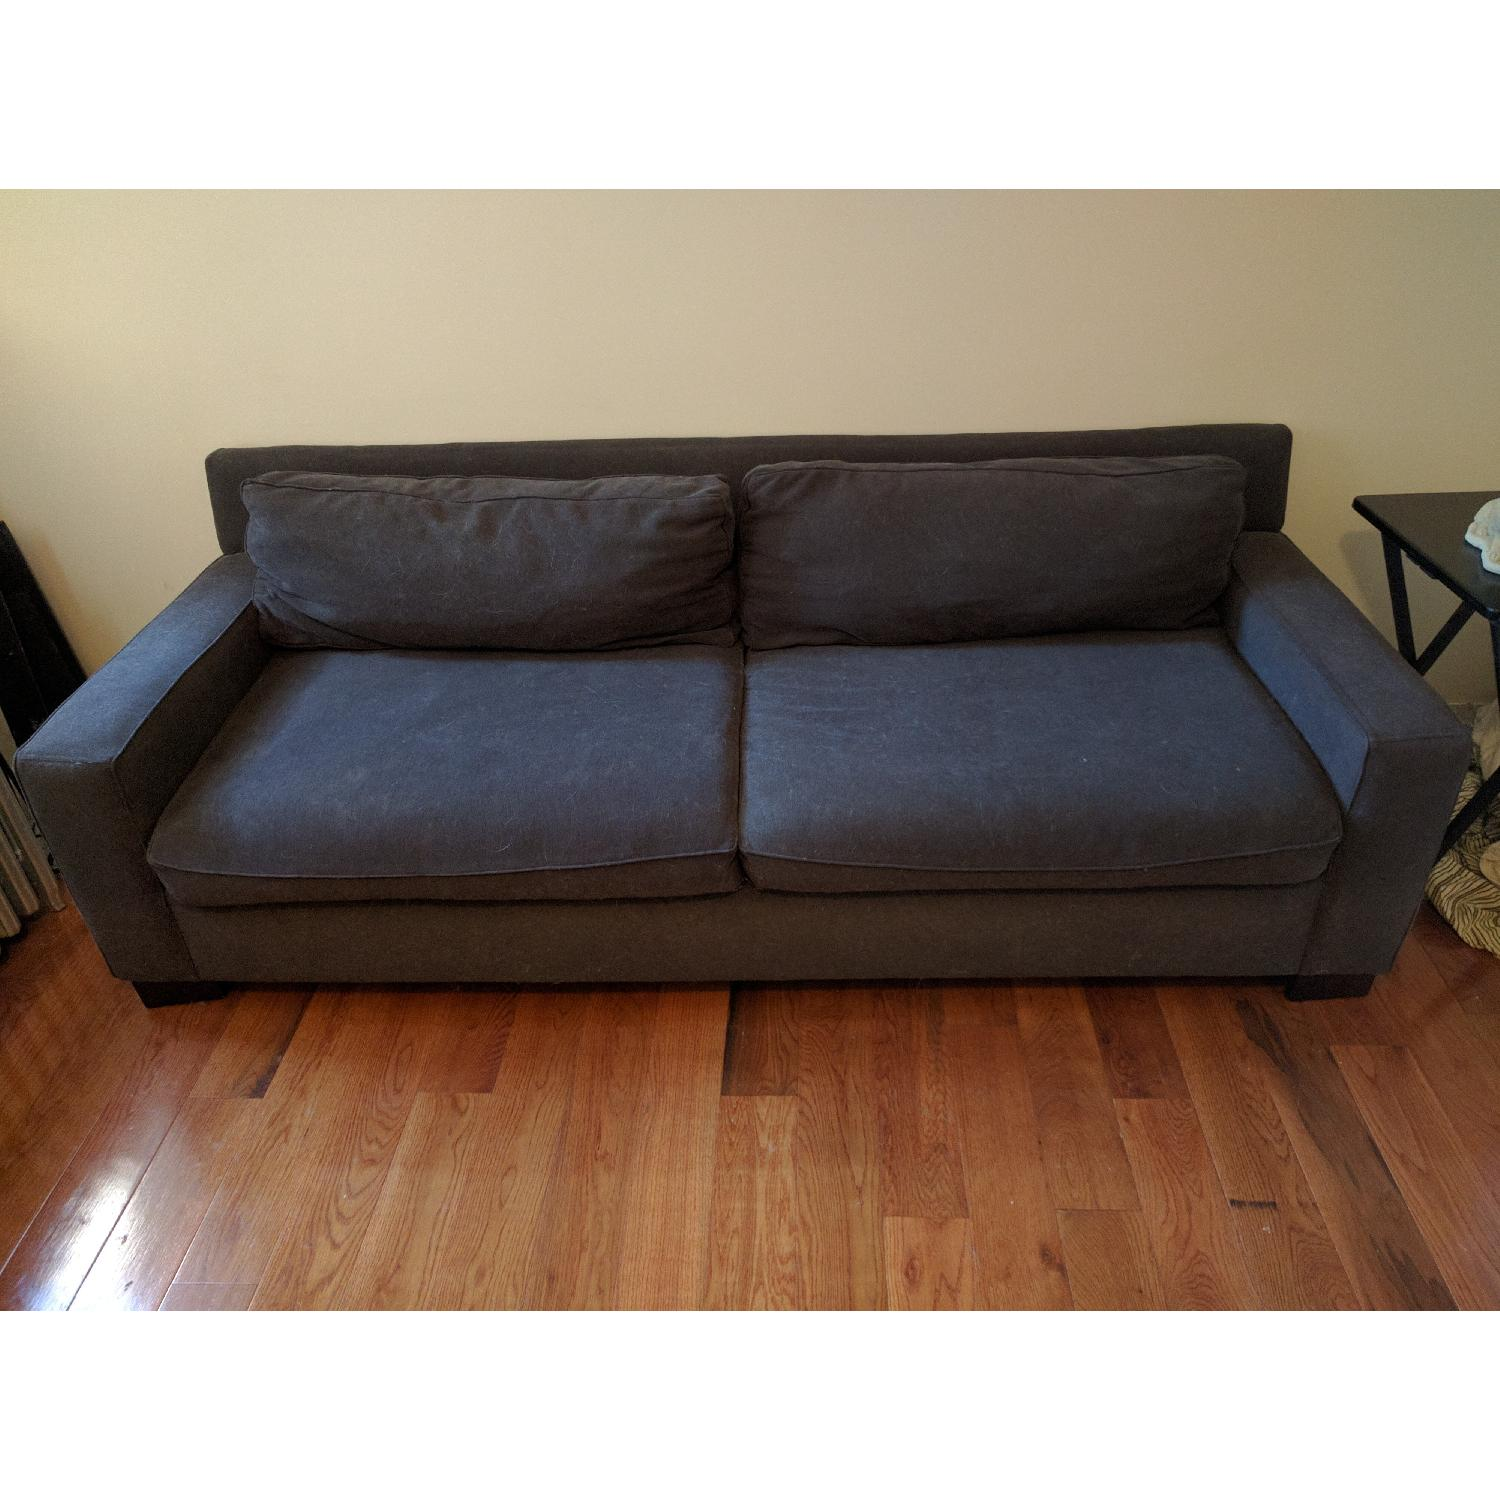 West Elm Henry Couch - image-1